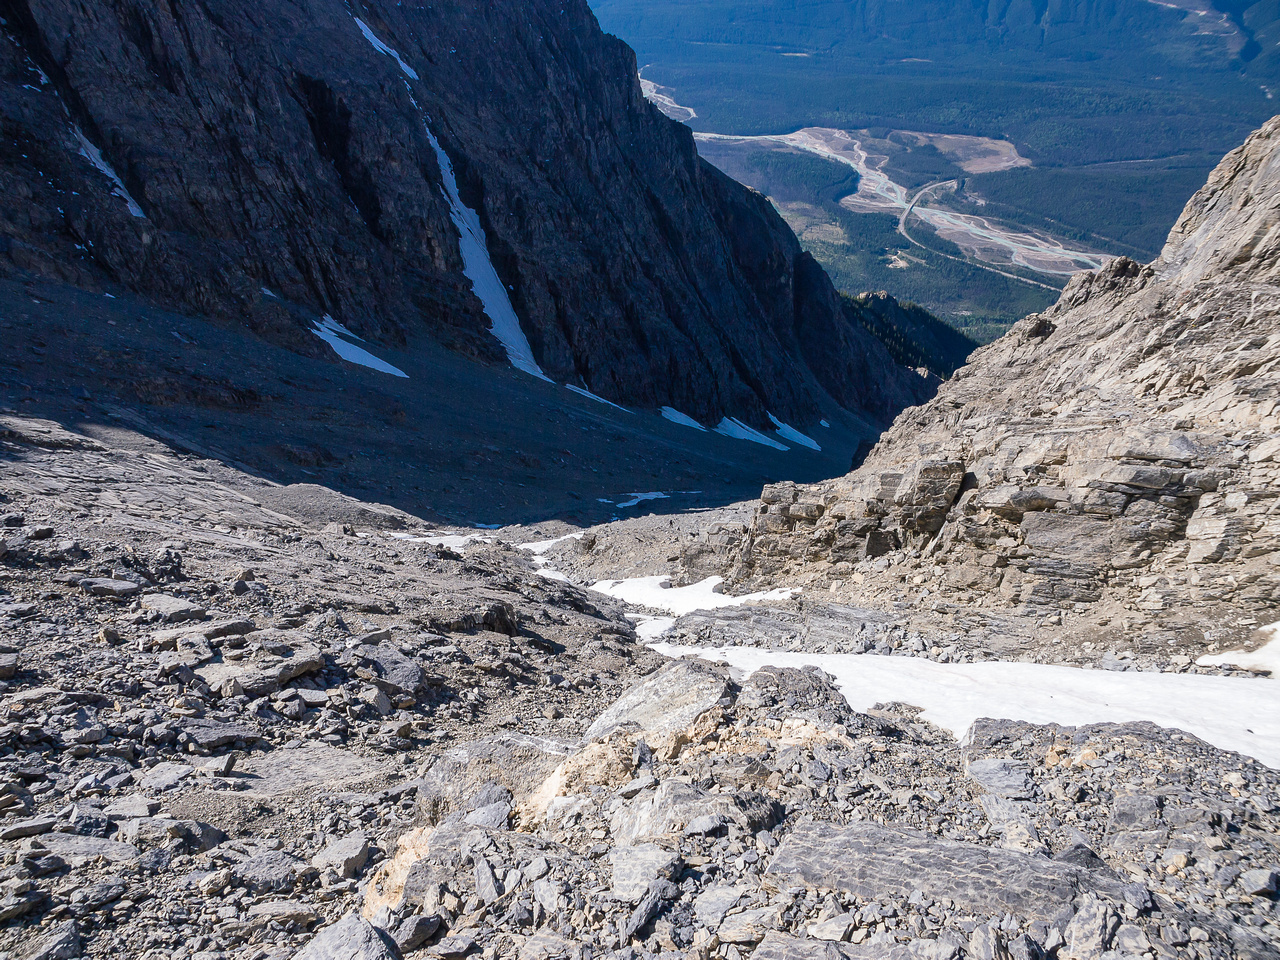 Slabs and scree.